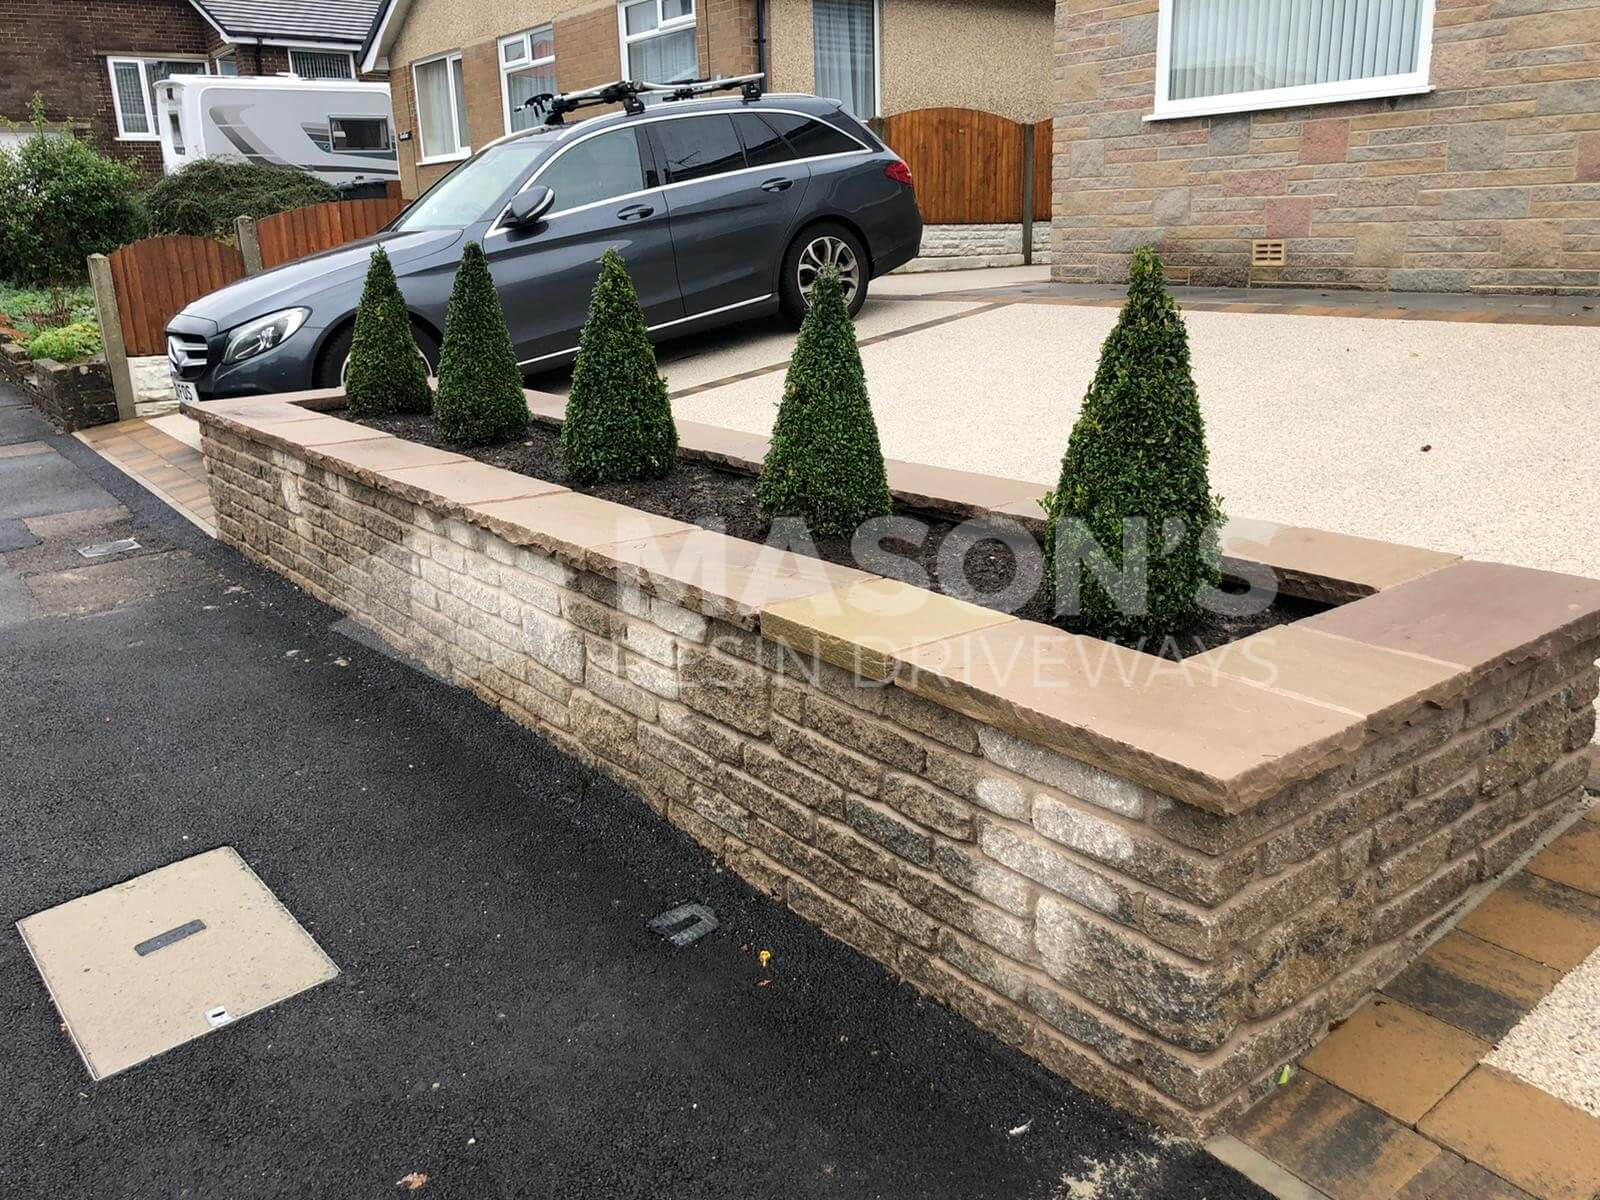 Resin bound driveway pearl quarts view of car and plants in Preston, Lancashire